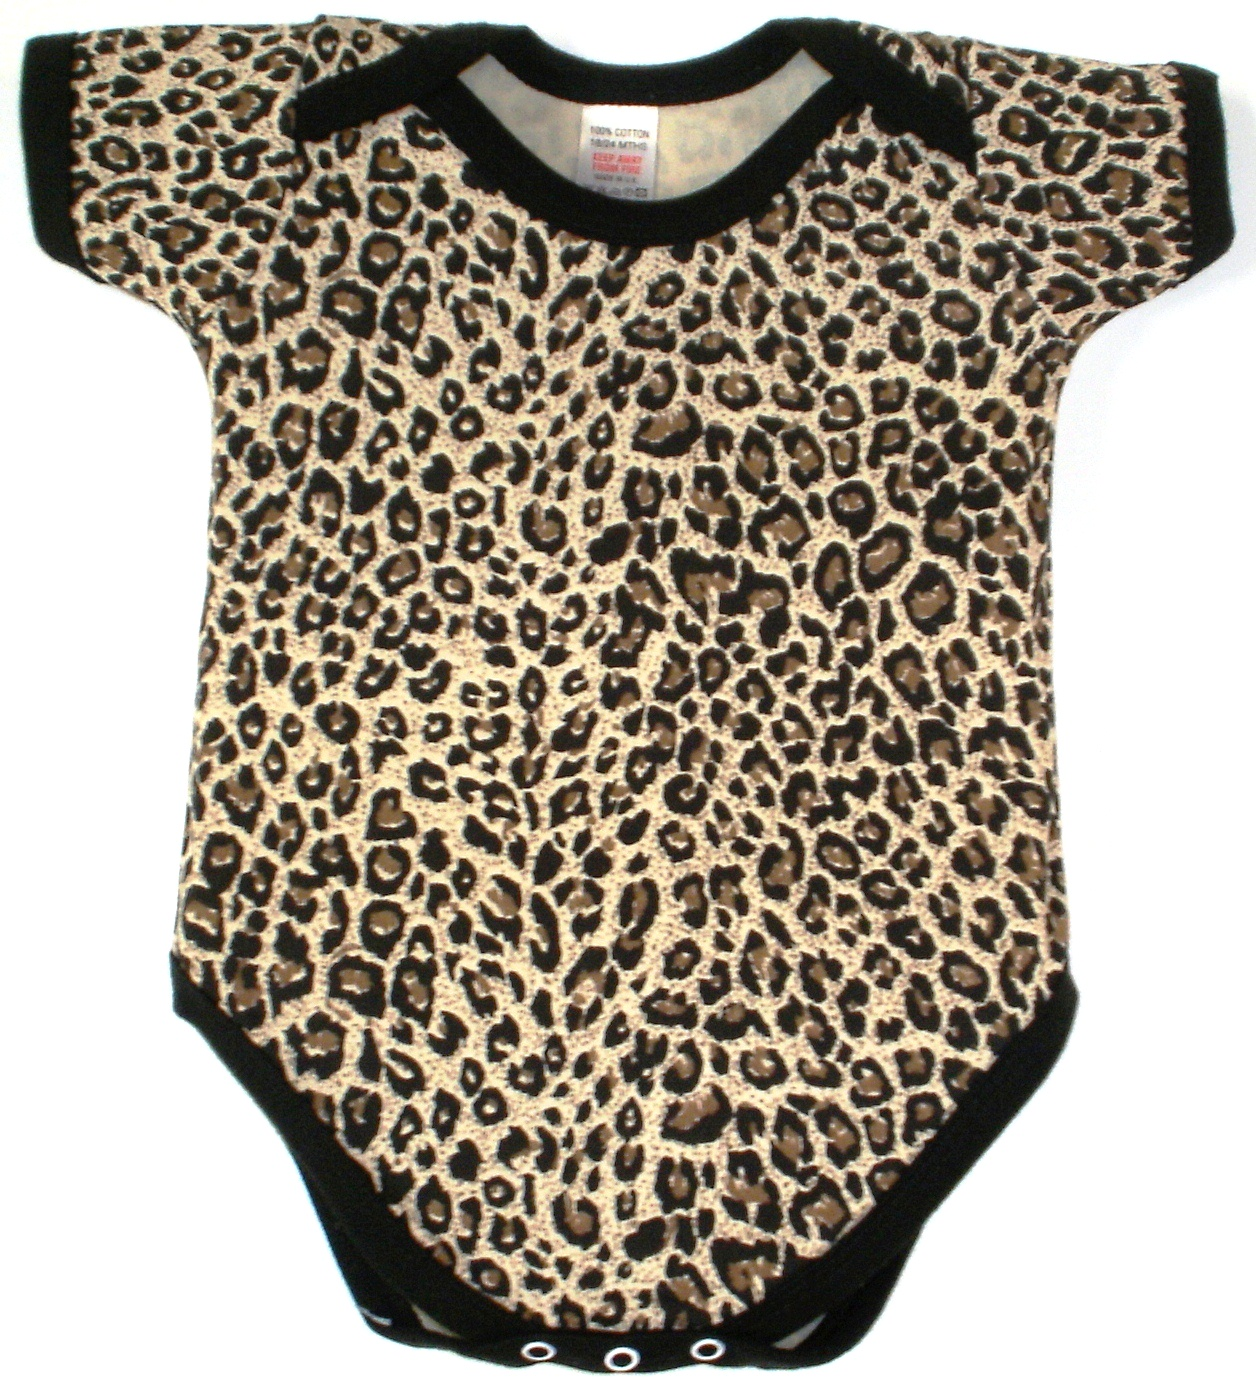 Leopard Print Baby Clothes